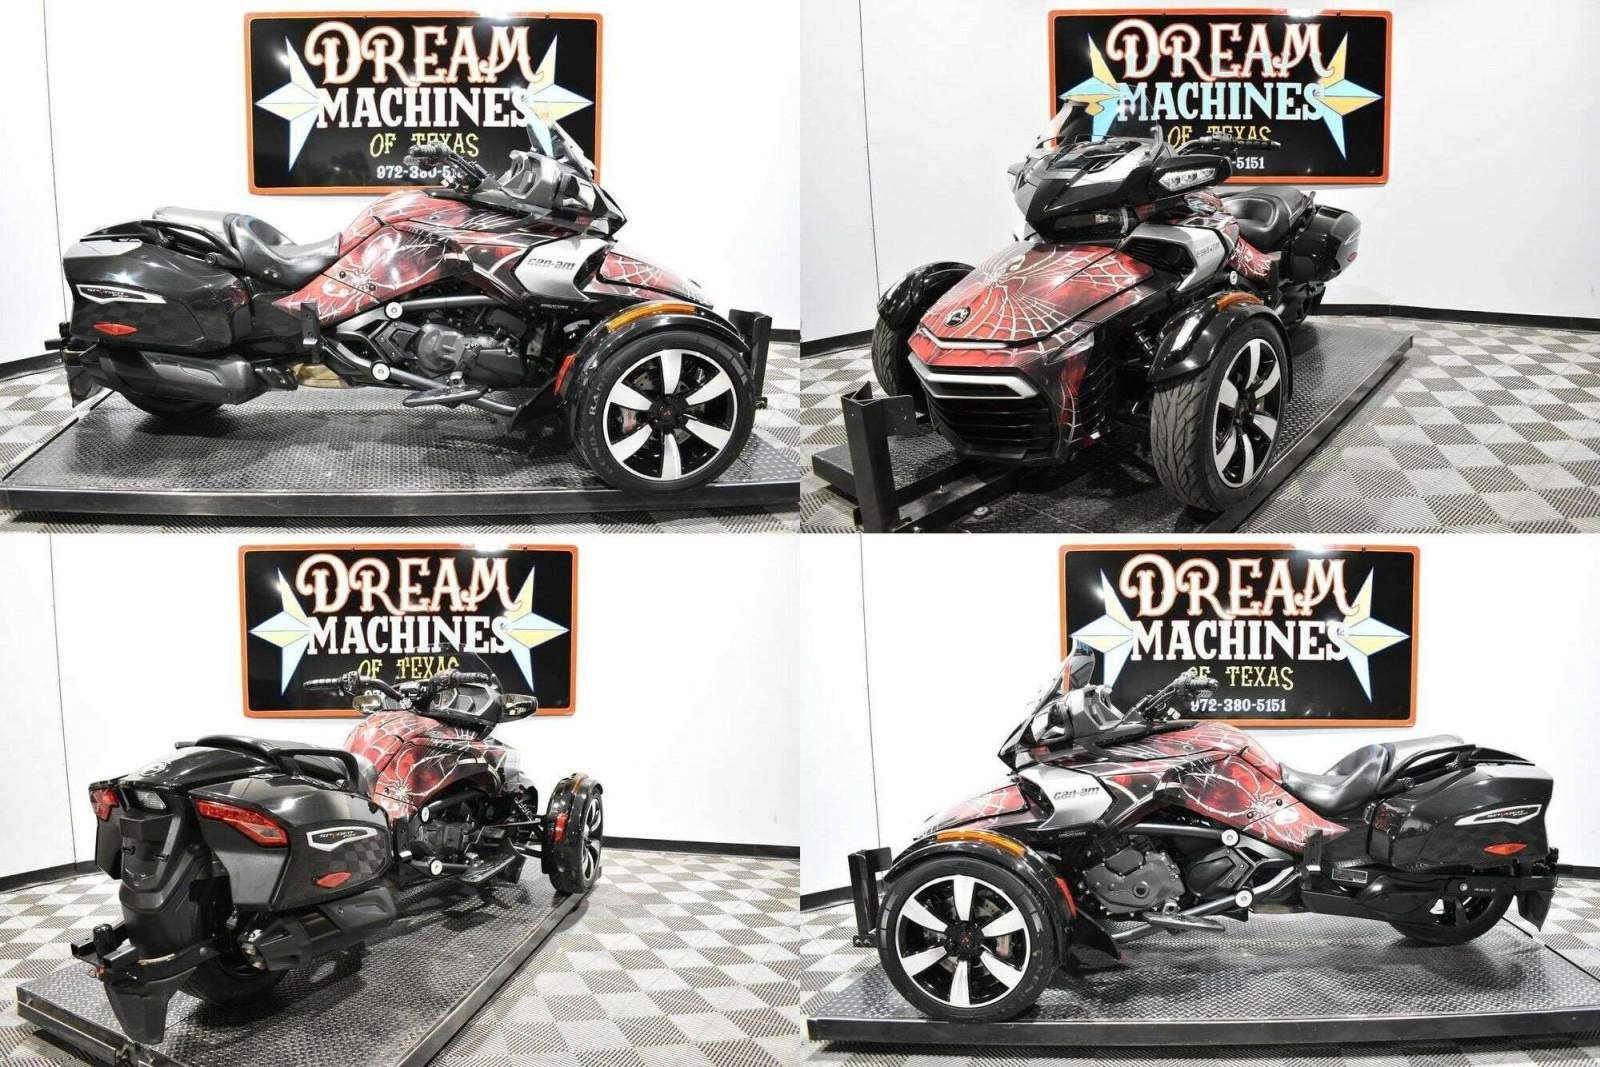 2016 Can-Am Spyder F3-T SE6 Black used for sale near me